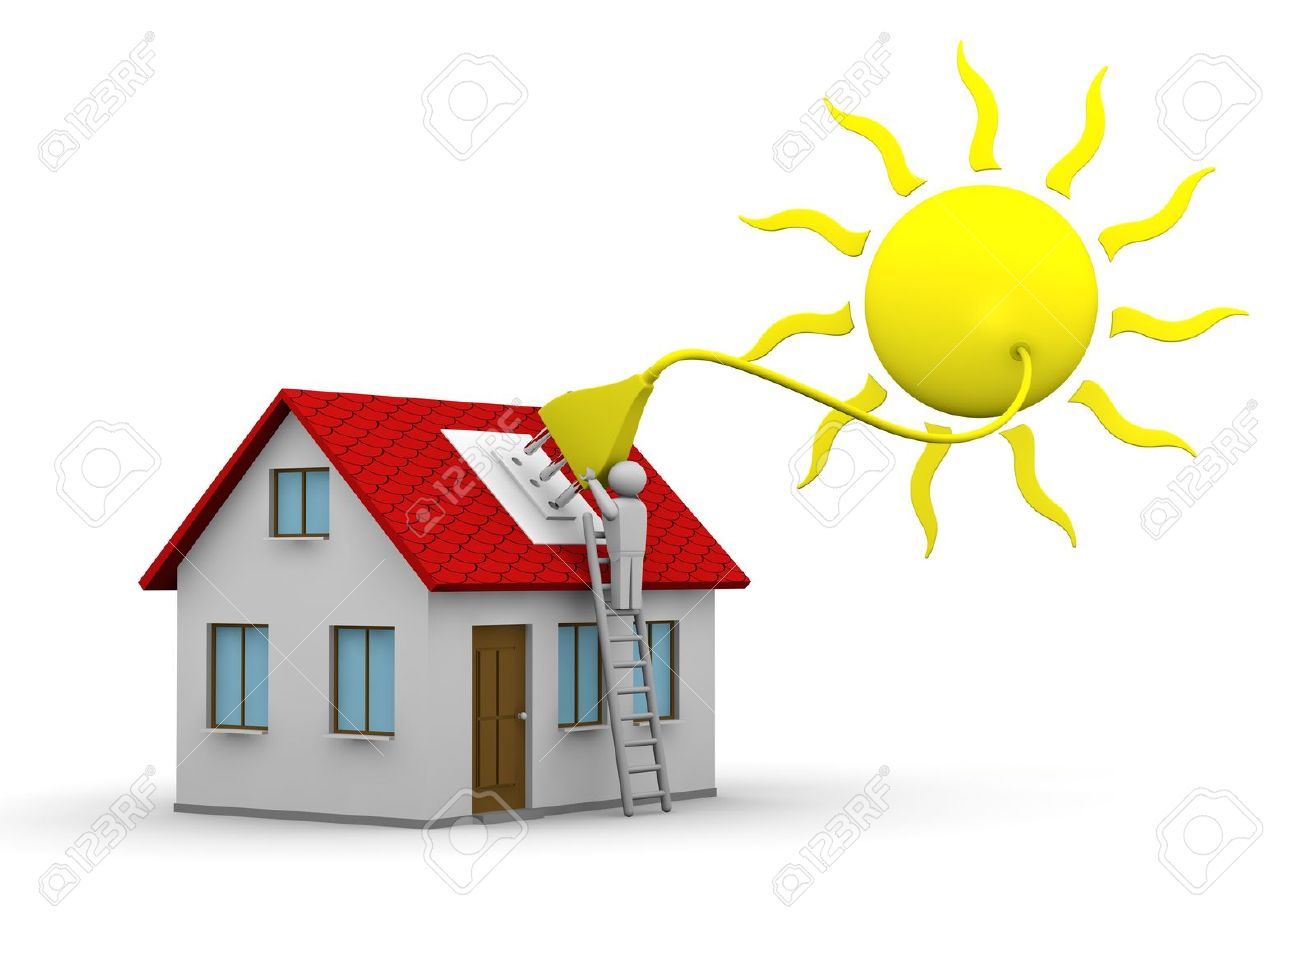 man who installs a solar energy system on a house Stock Photo - 10626752